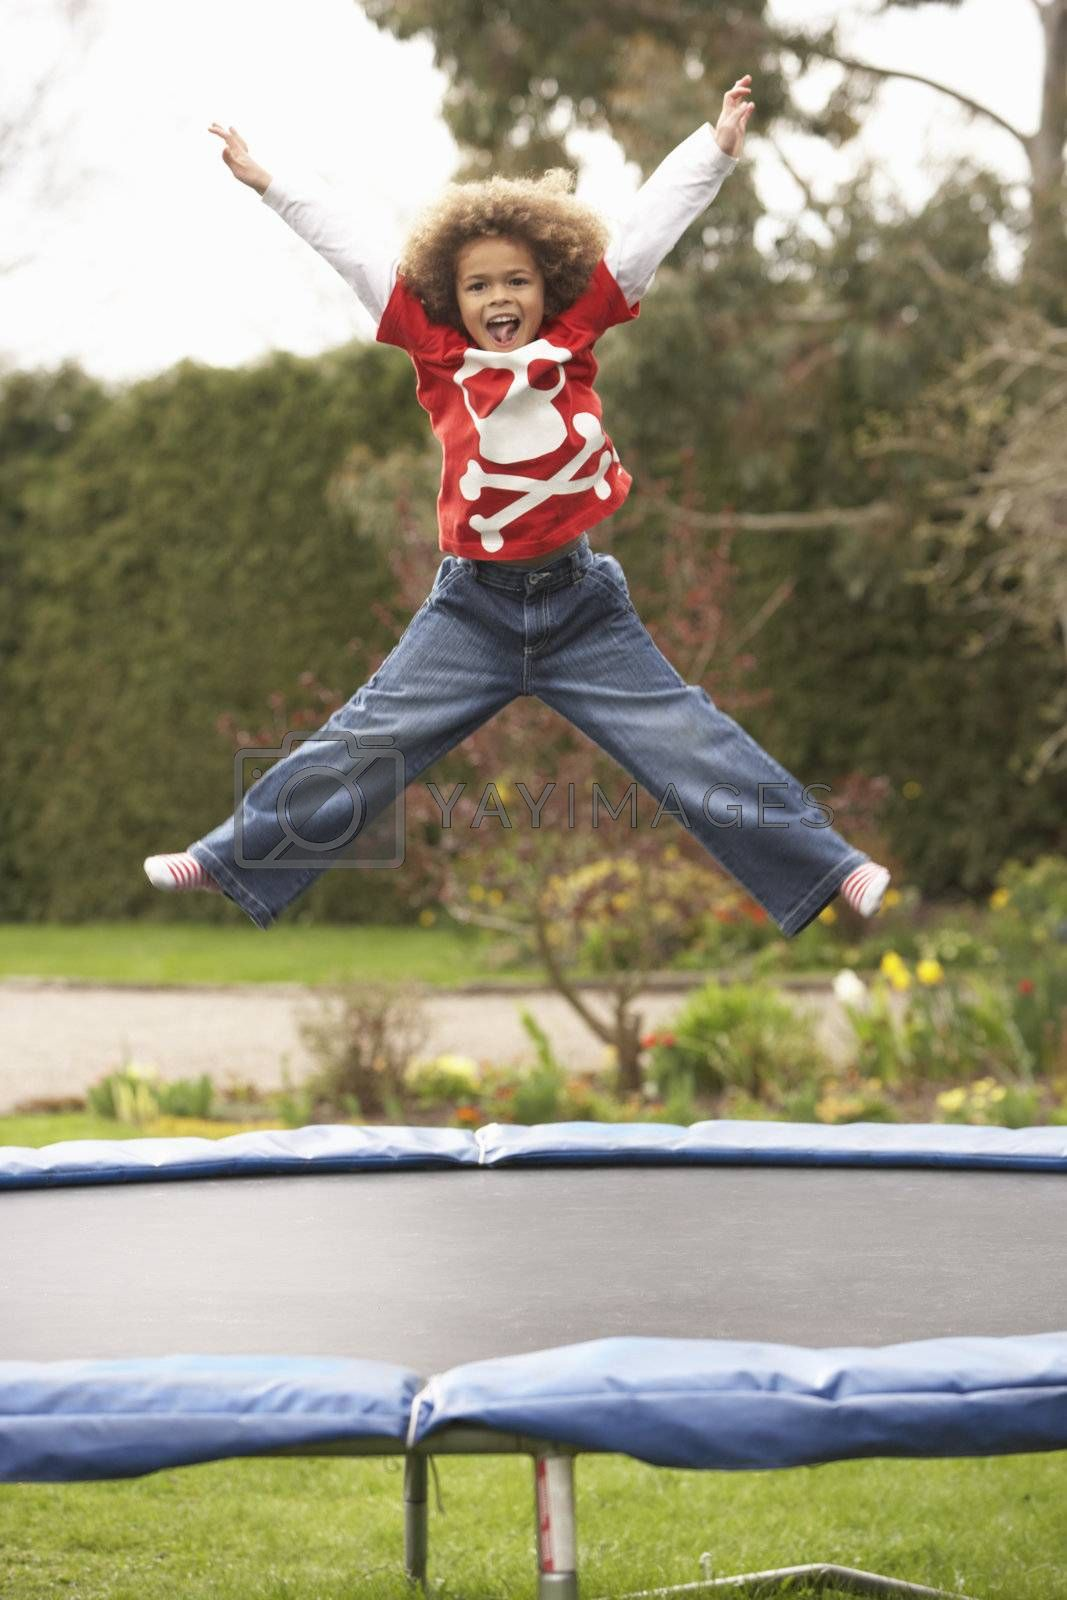 Royalty free image of Boy Playing On Trampoline by omg_images